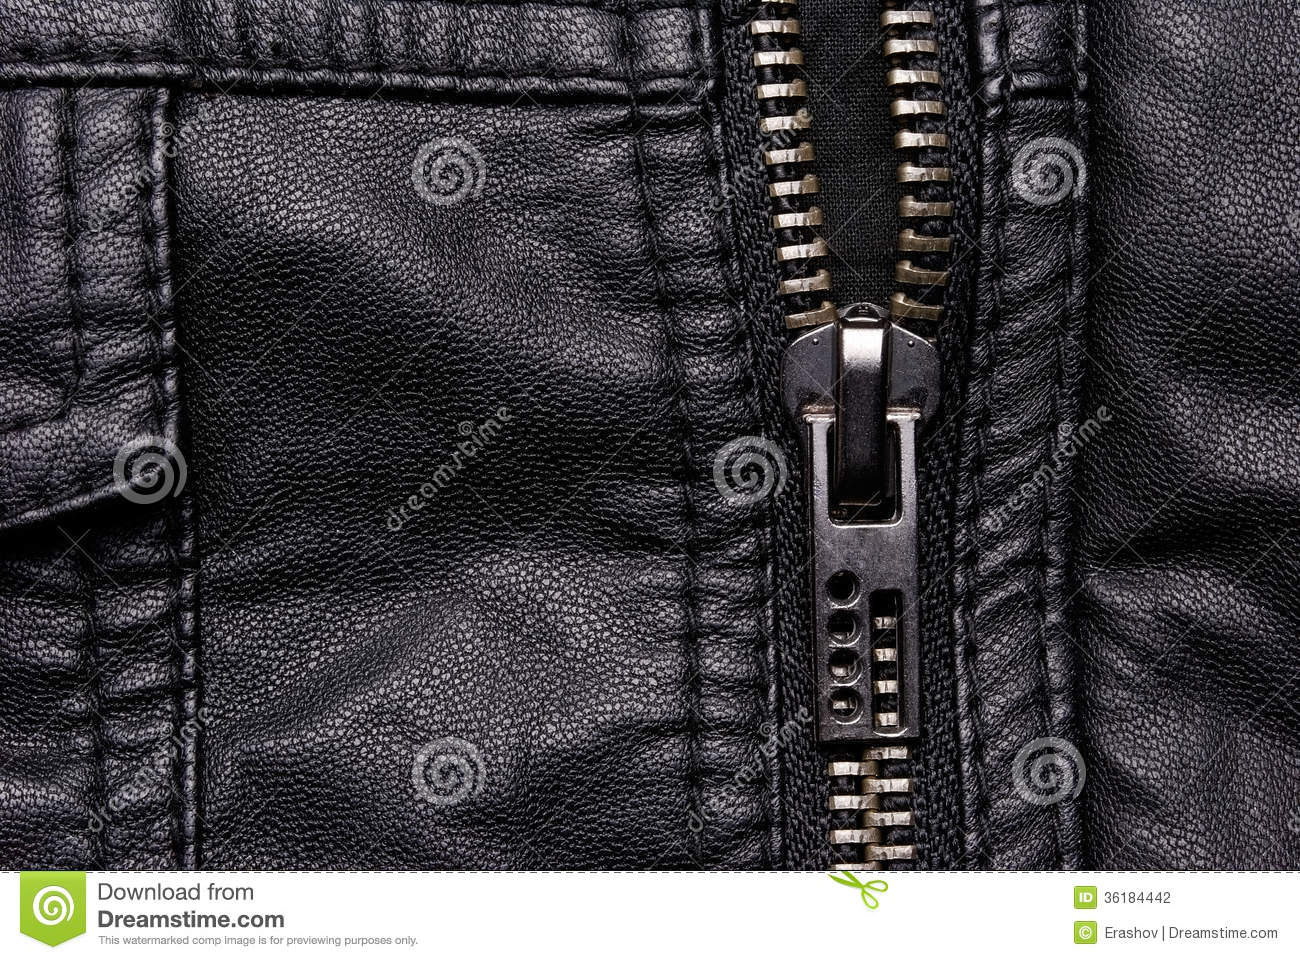 how to fix a zipper on a leather jacket